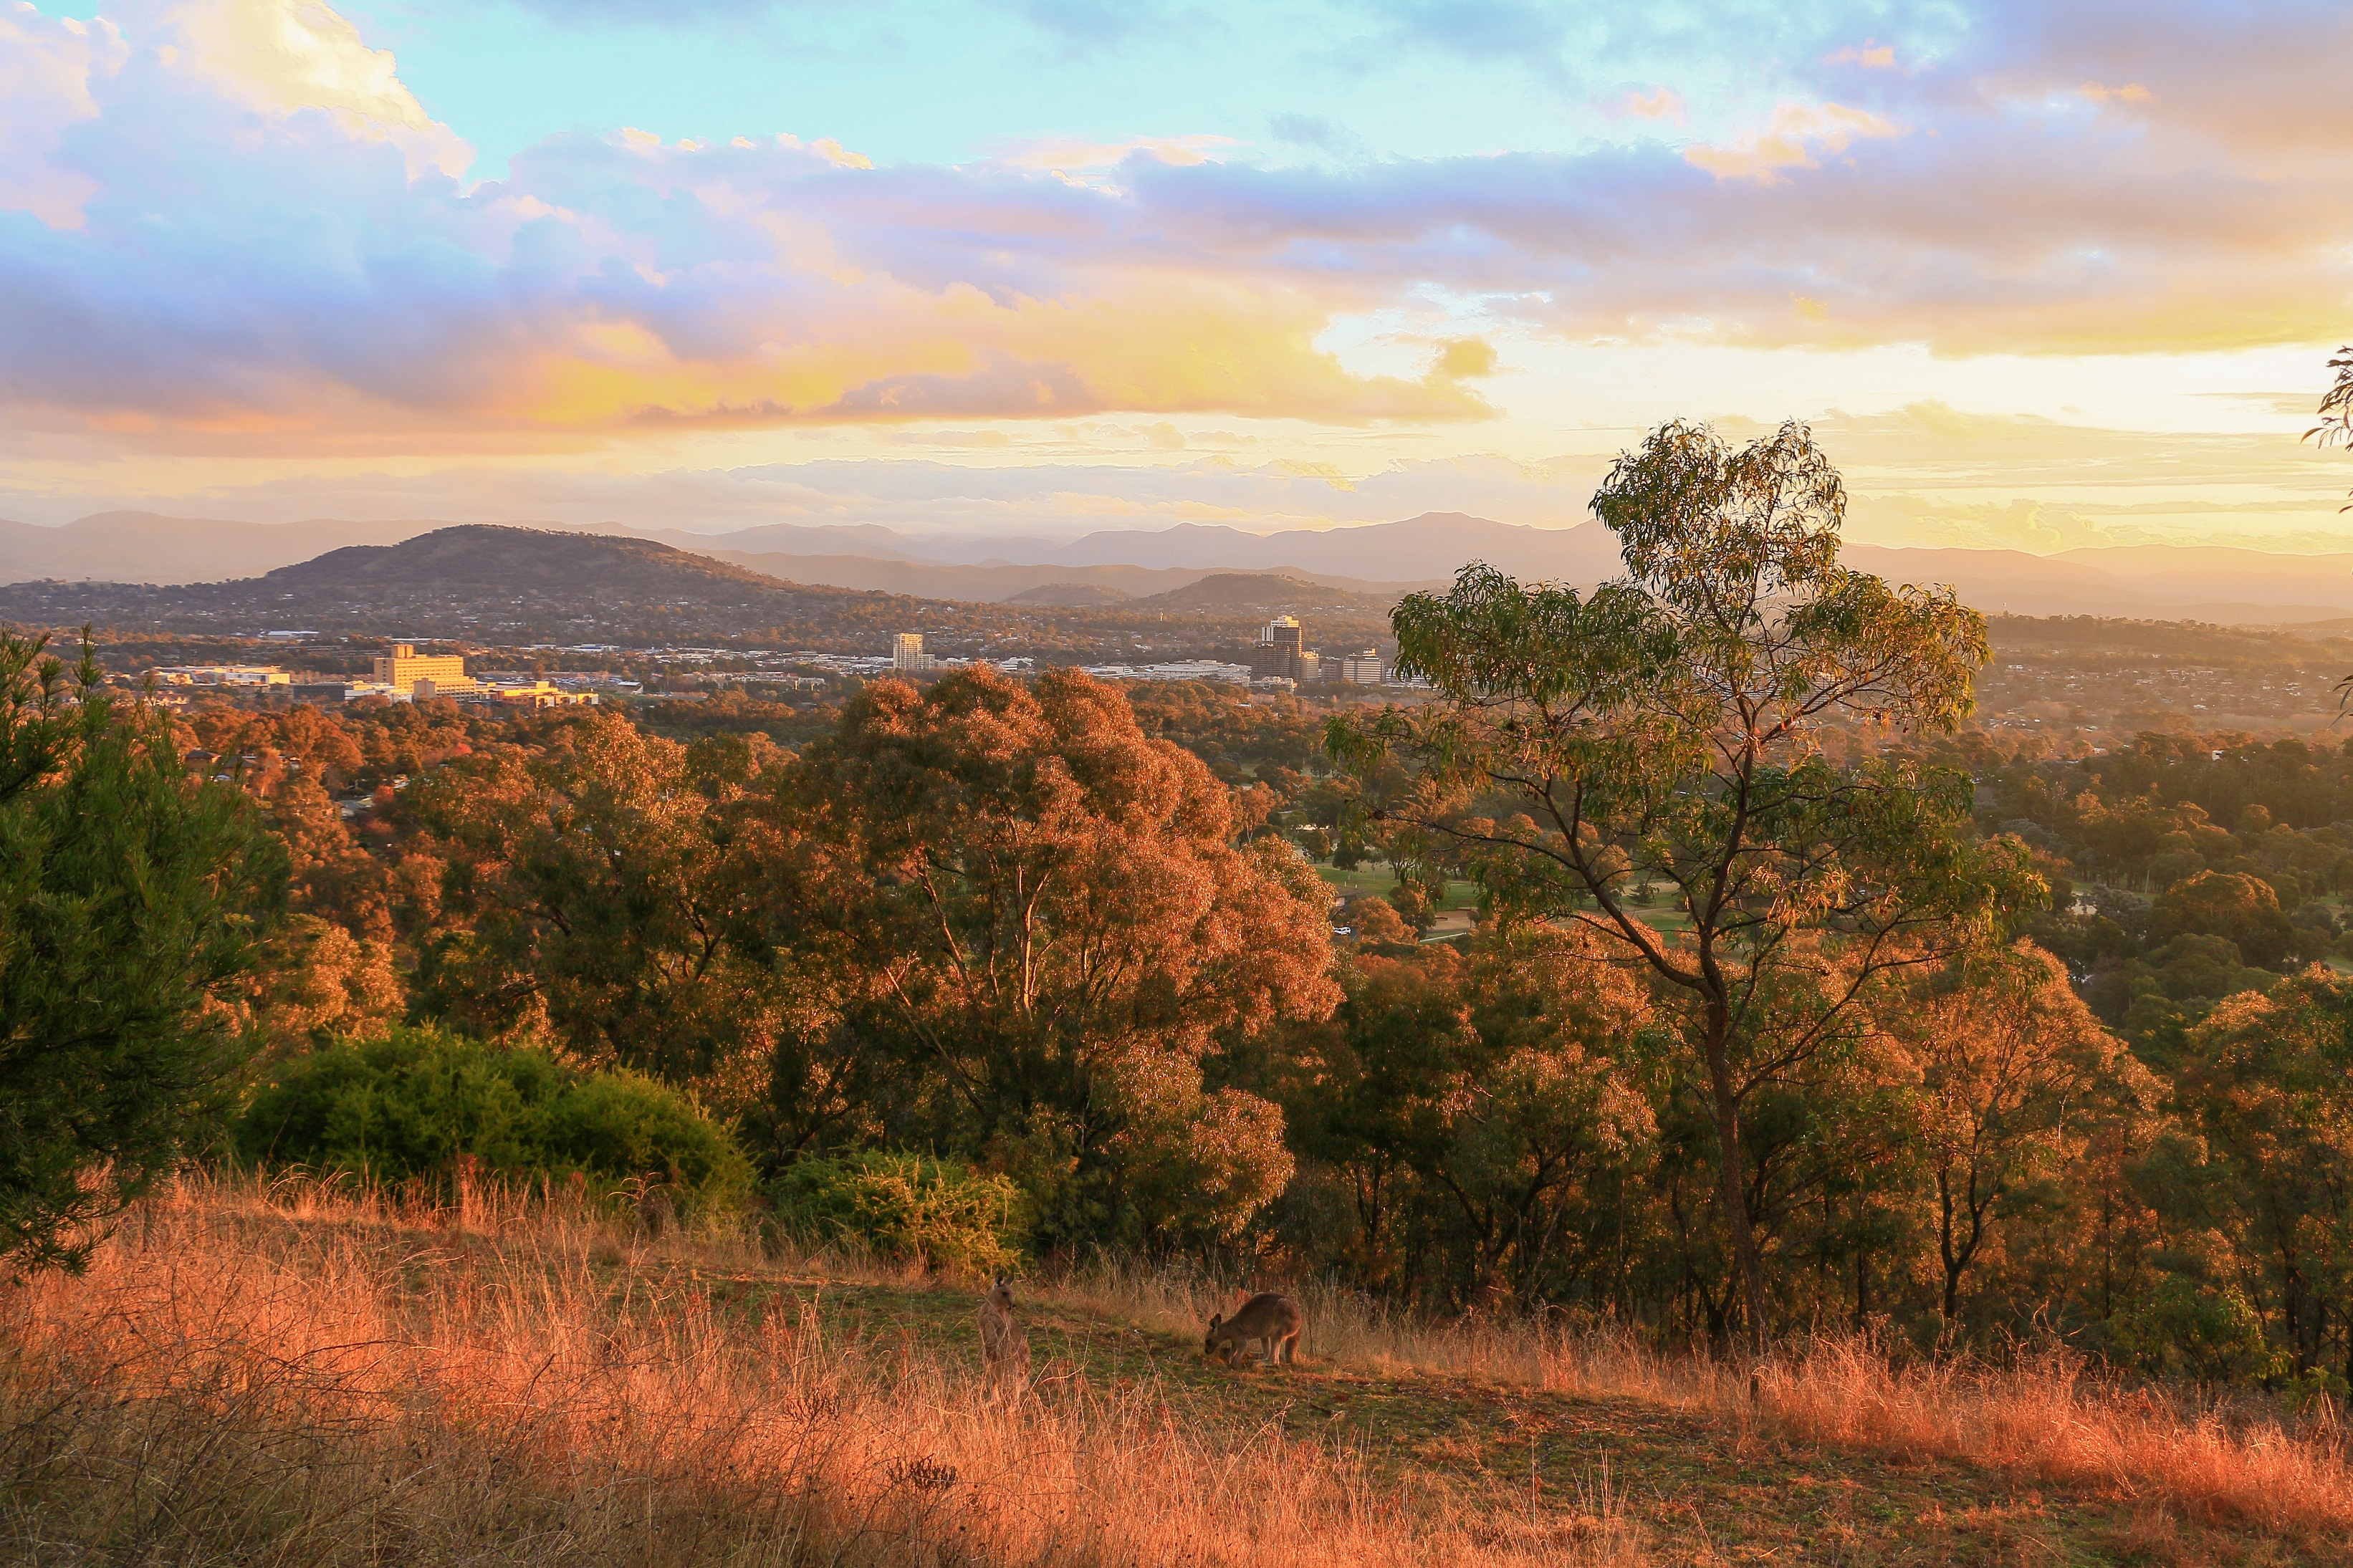 A sunset scene over Woden and the hills